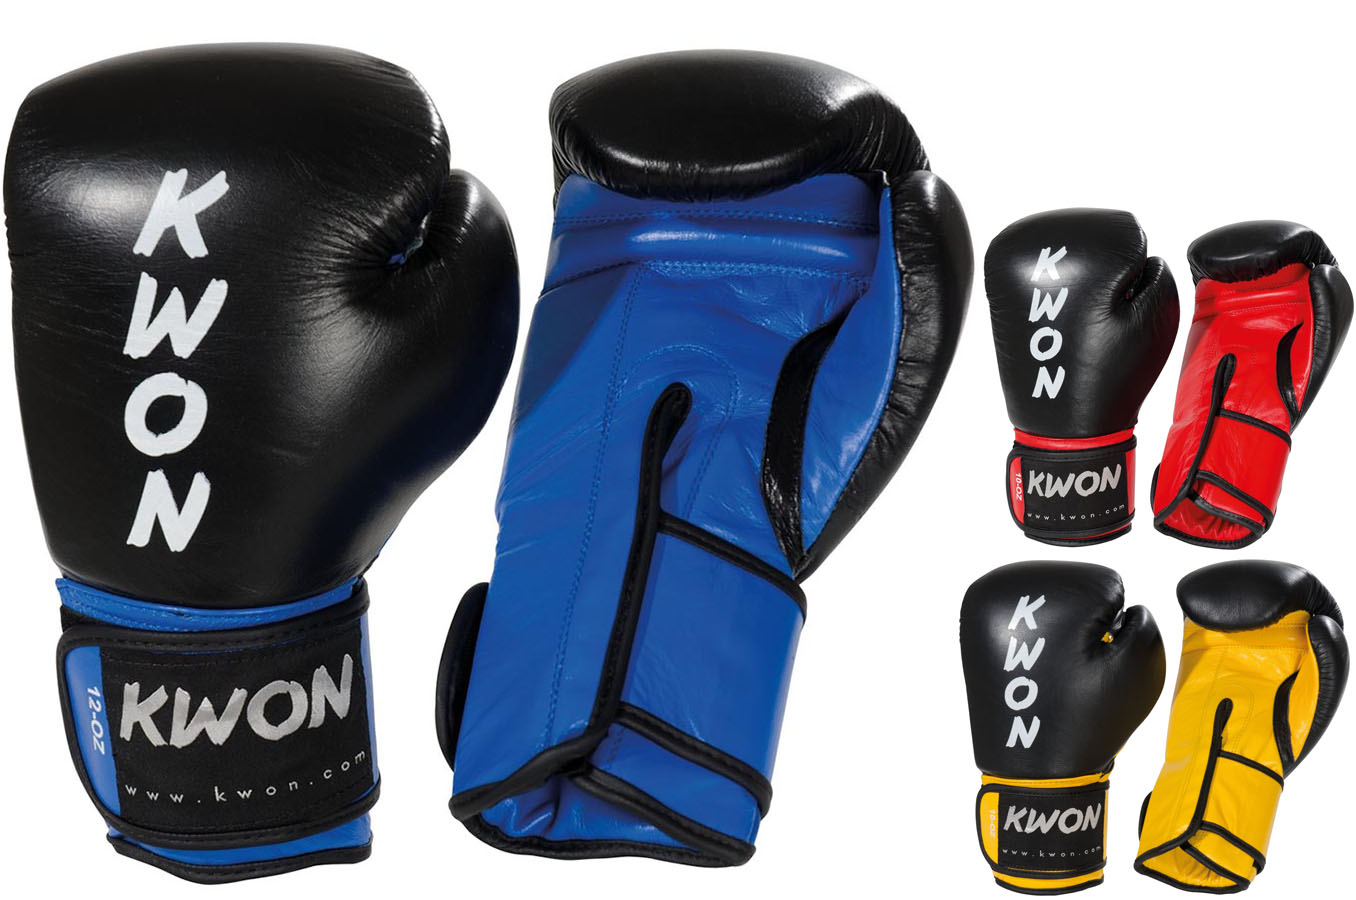 PRO COMBAT 12 OZ Professional Boxing Leather Boxing Gloves With Velcro Closure